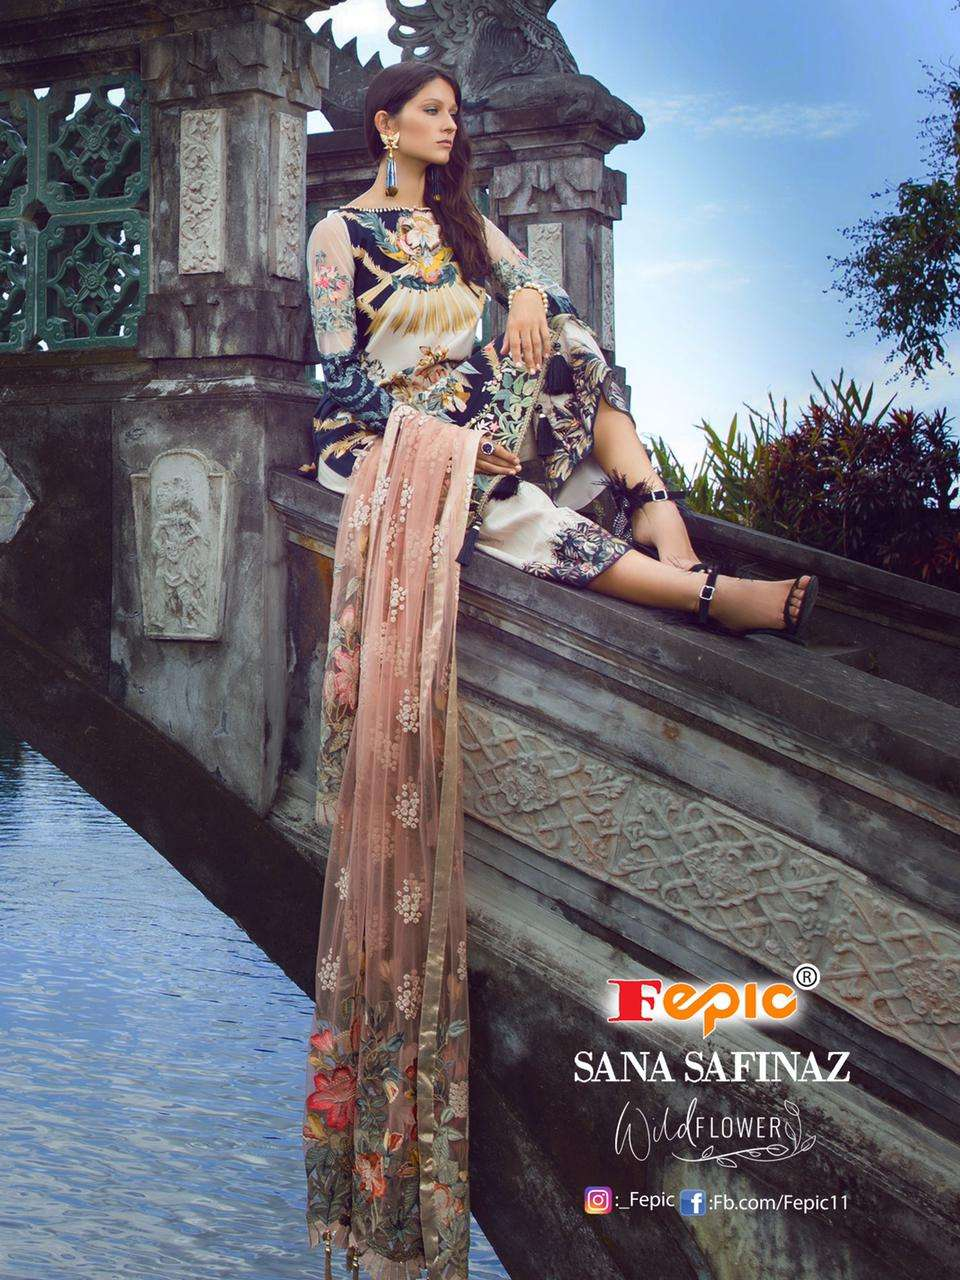 Fepic Sana Safinaz Wild Flower Pure Cambric Cotton Digital Print With Embroidery Work Patch Pakistani Suits Collection